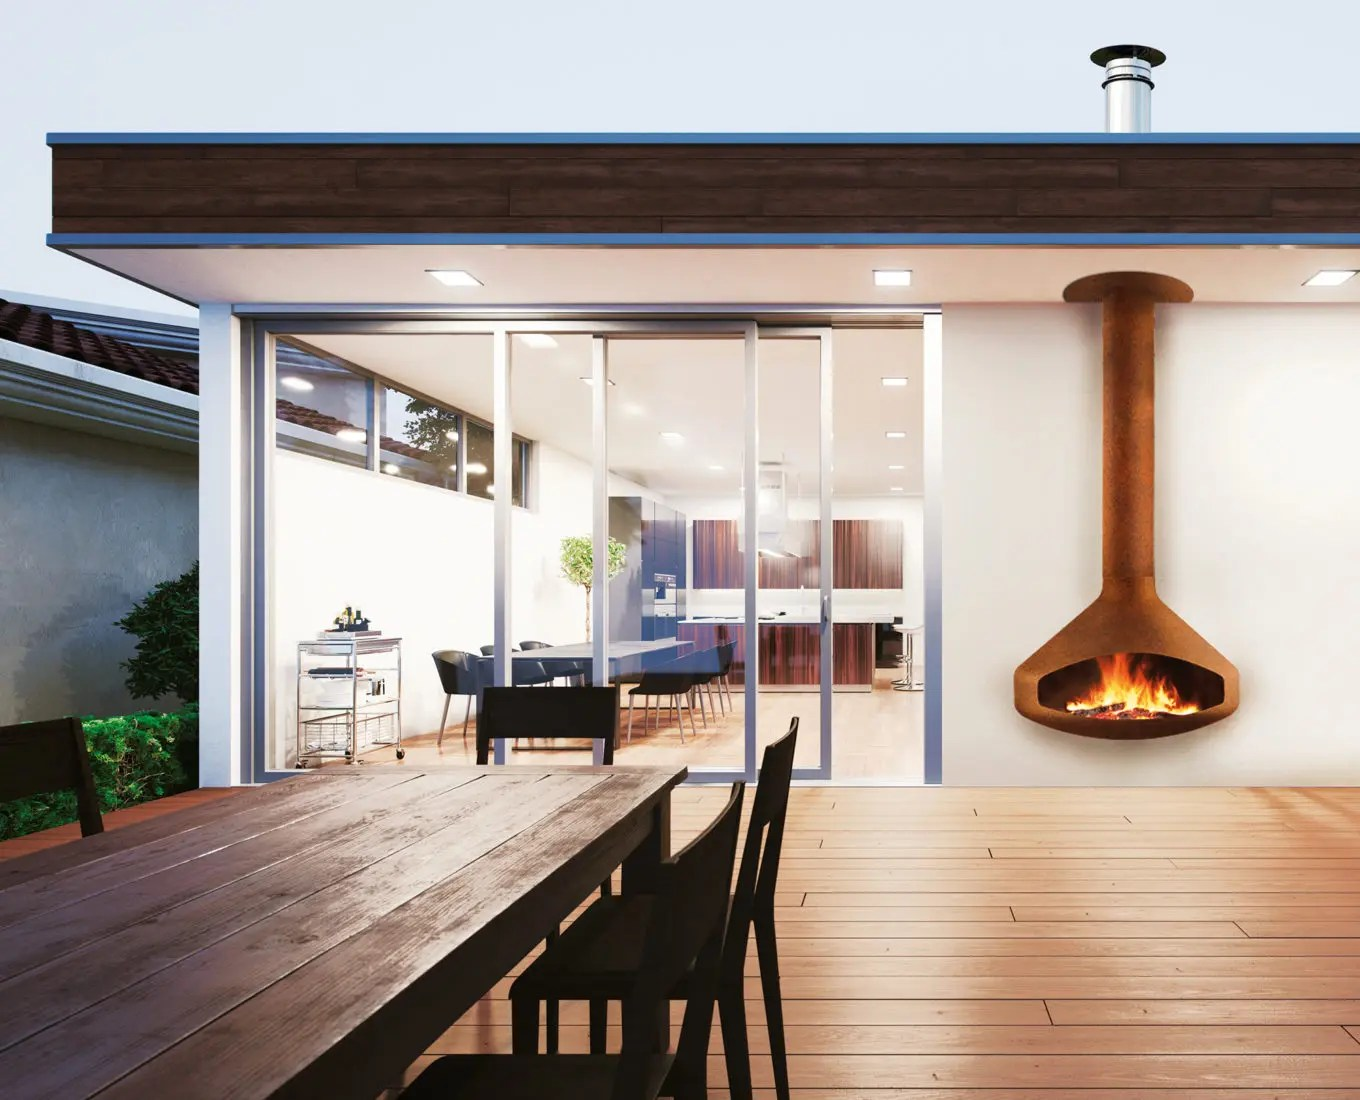 Paxfocus Outdoor By Focus Fires Wall Mounted Outdoor